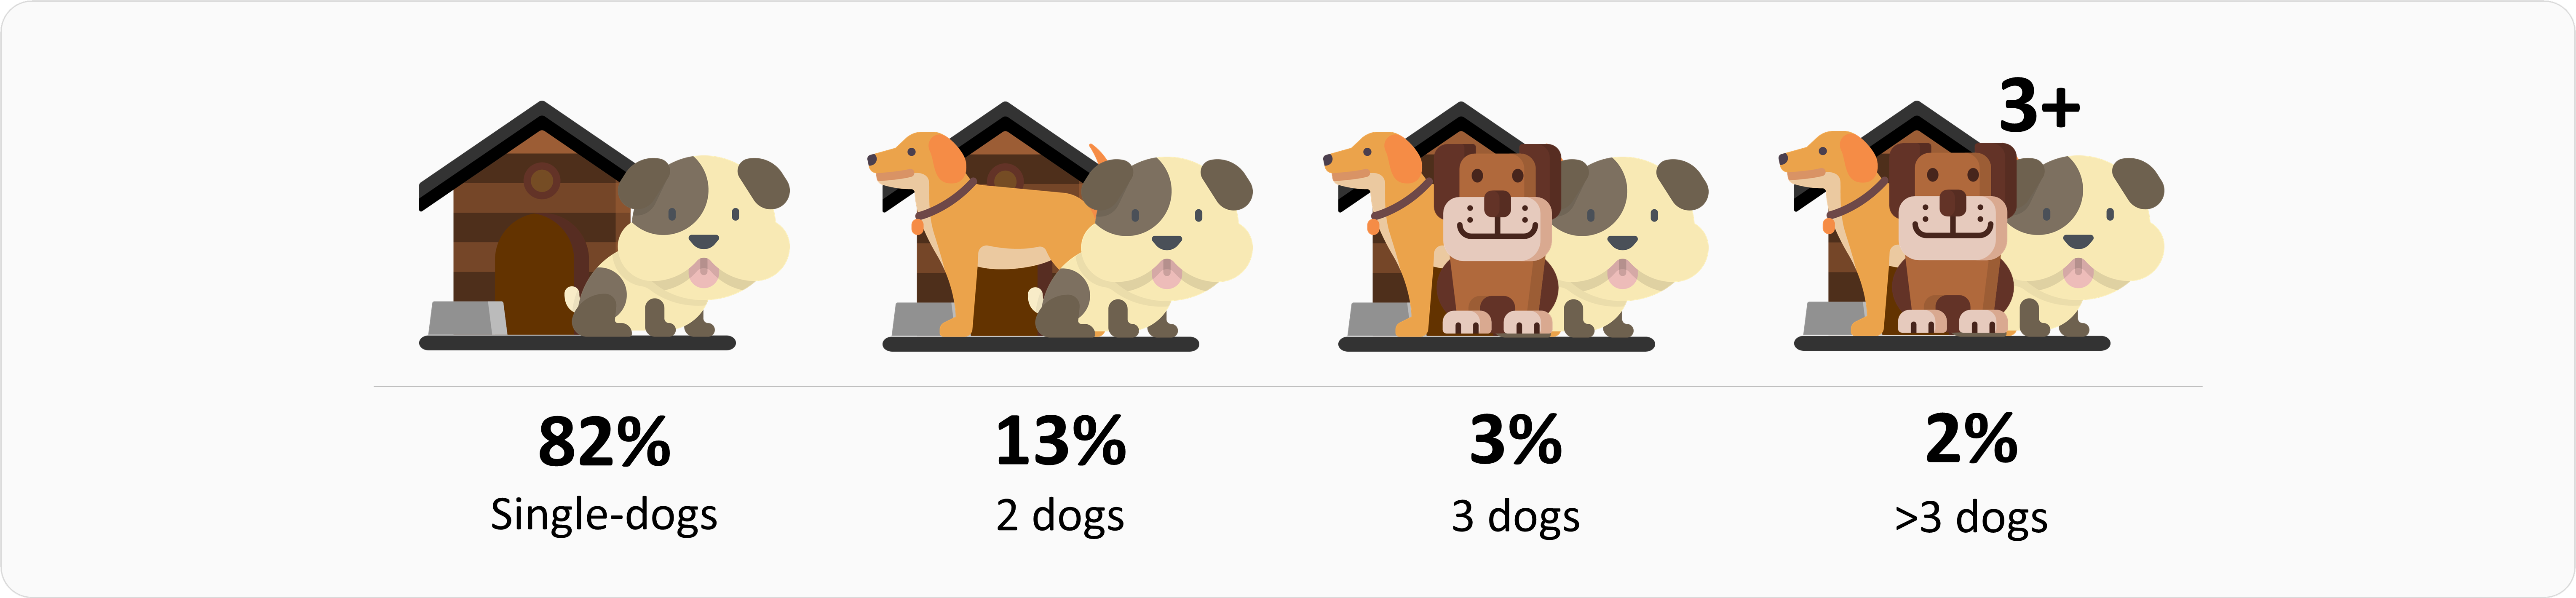 Number of cats in dog families